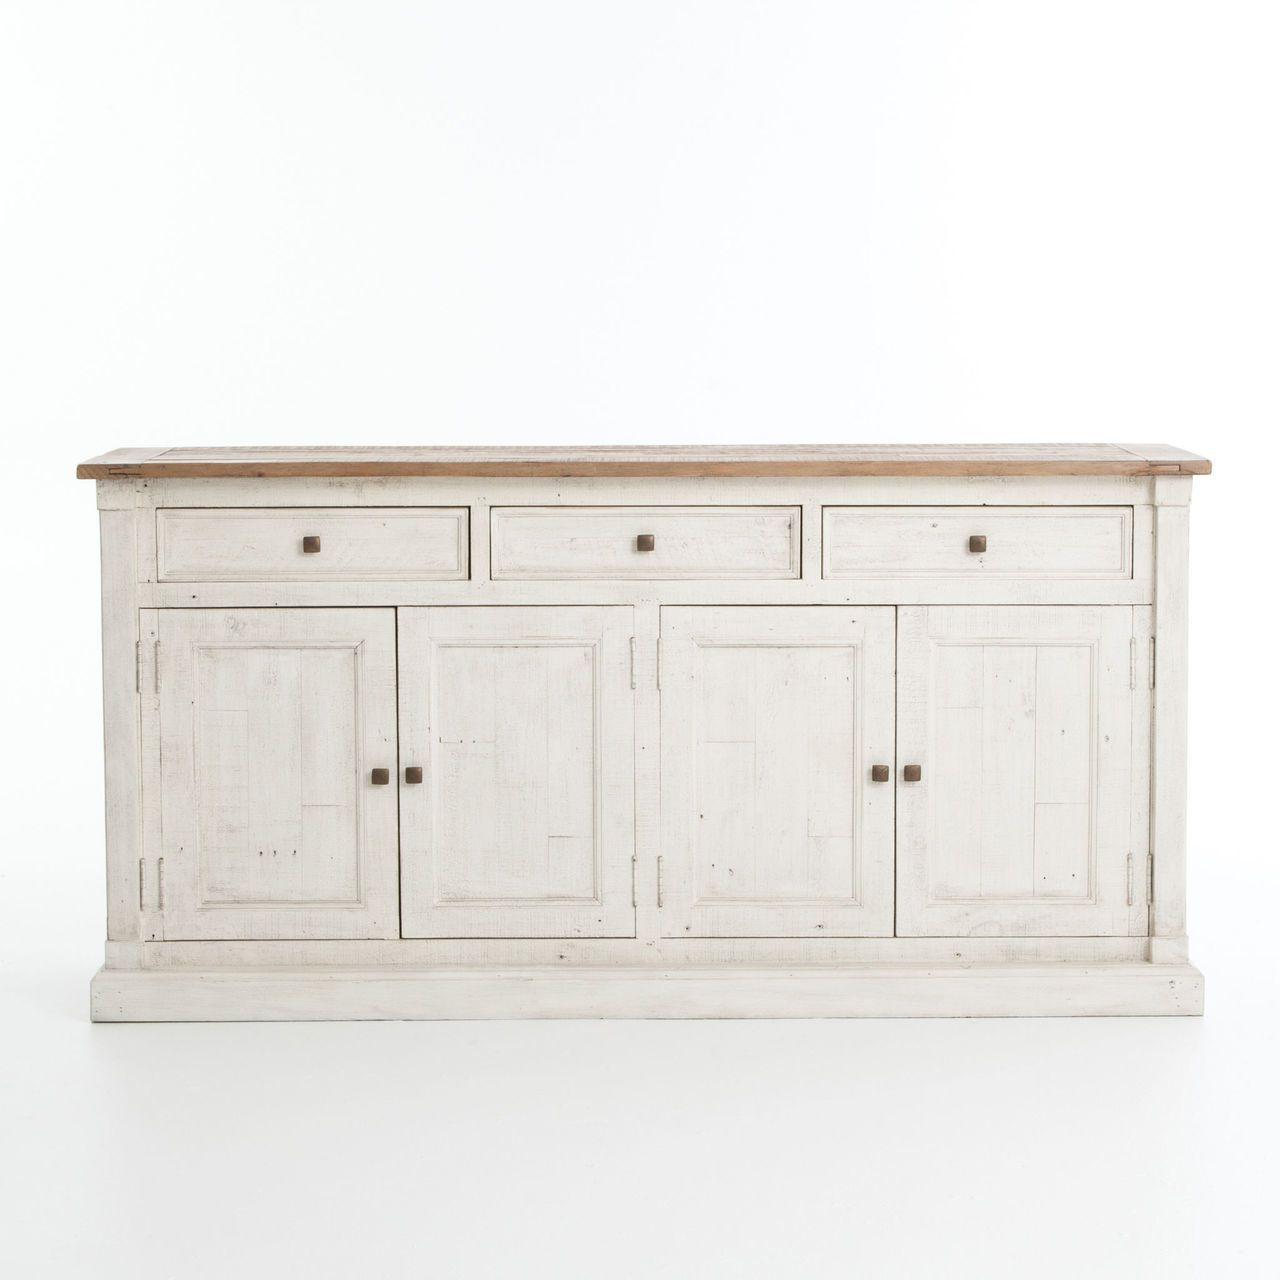 Cintra Reclaimed Wood White Sideboard Buffet | Dining Room With Regard To Payton Serving Sideboards (View 3 of 20)